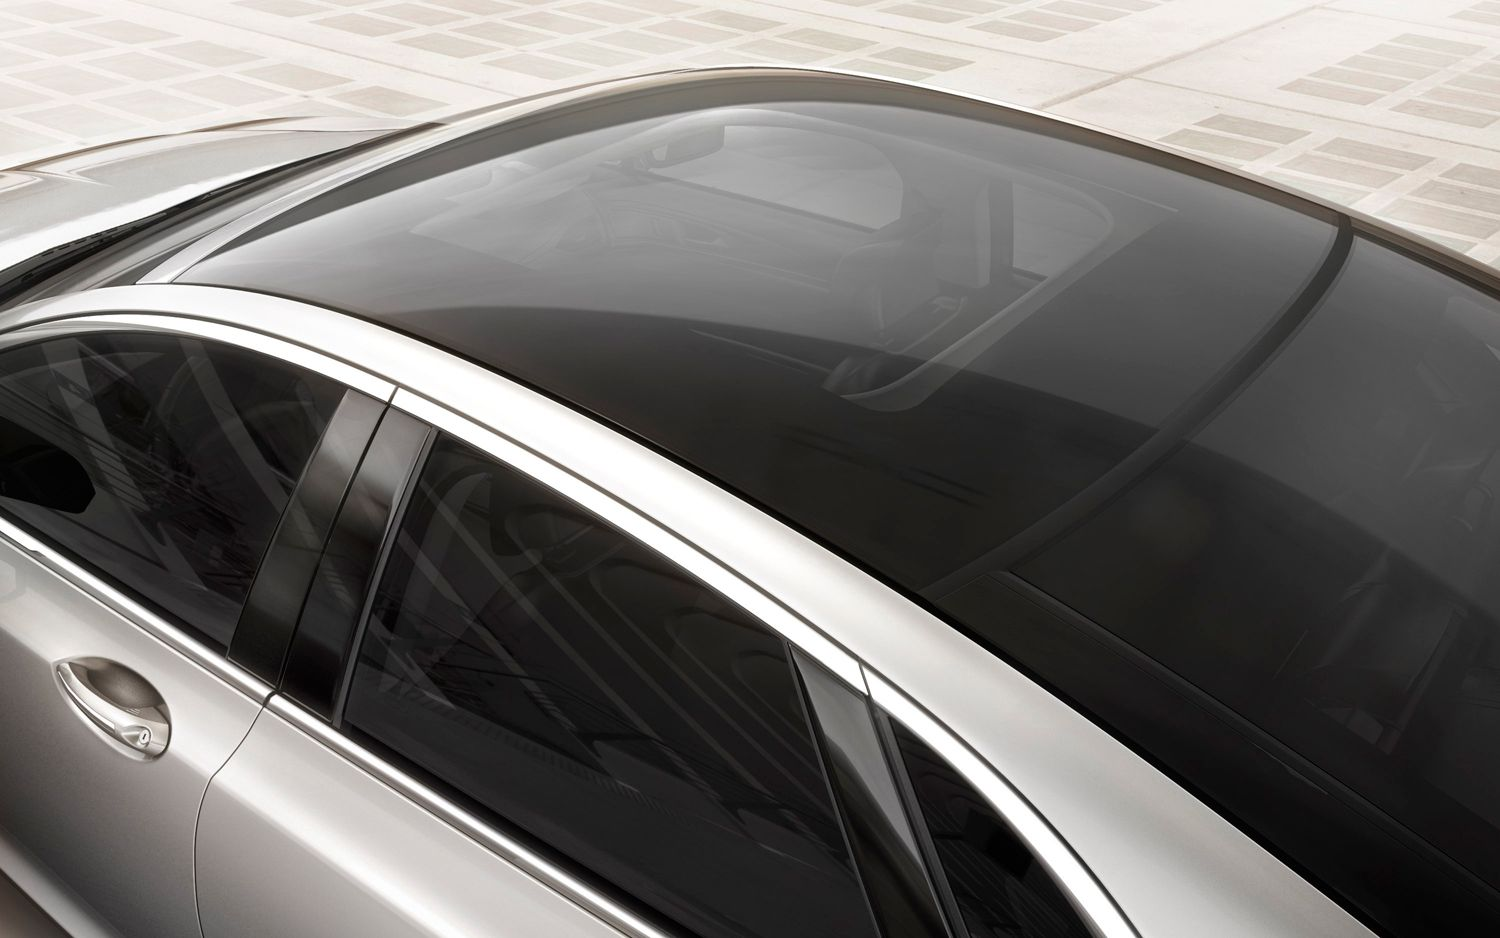 2013 Lincoln MKZ Sunroof